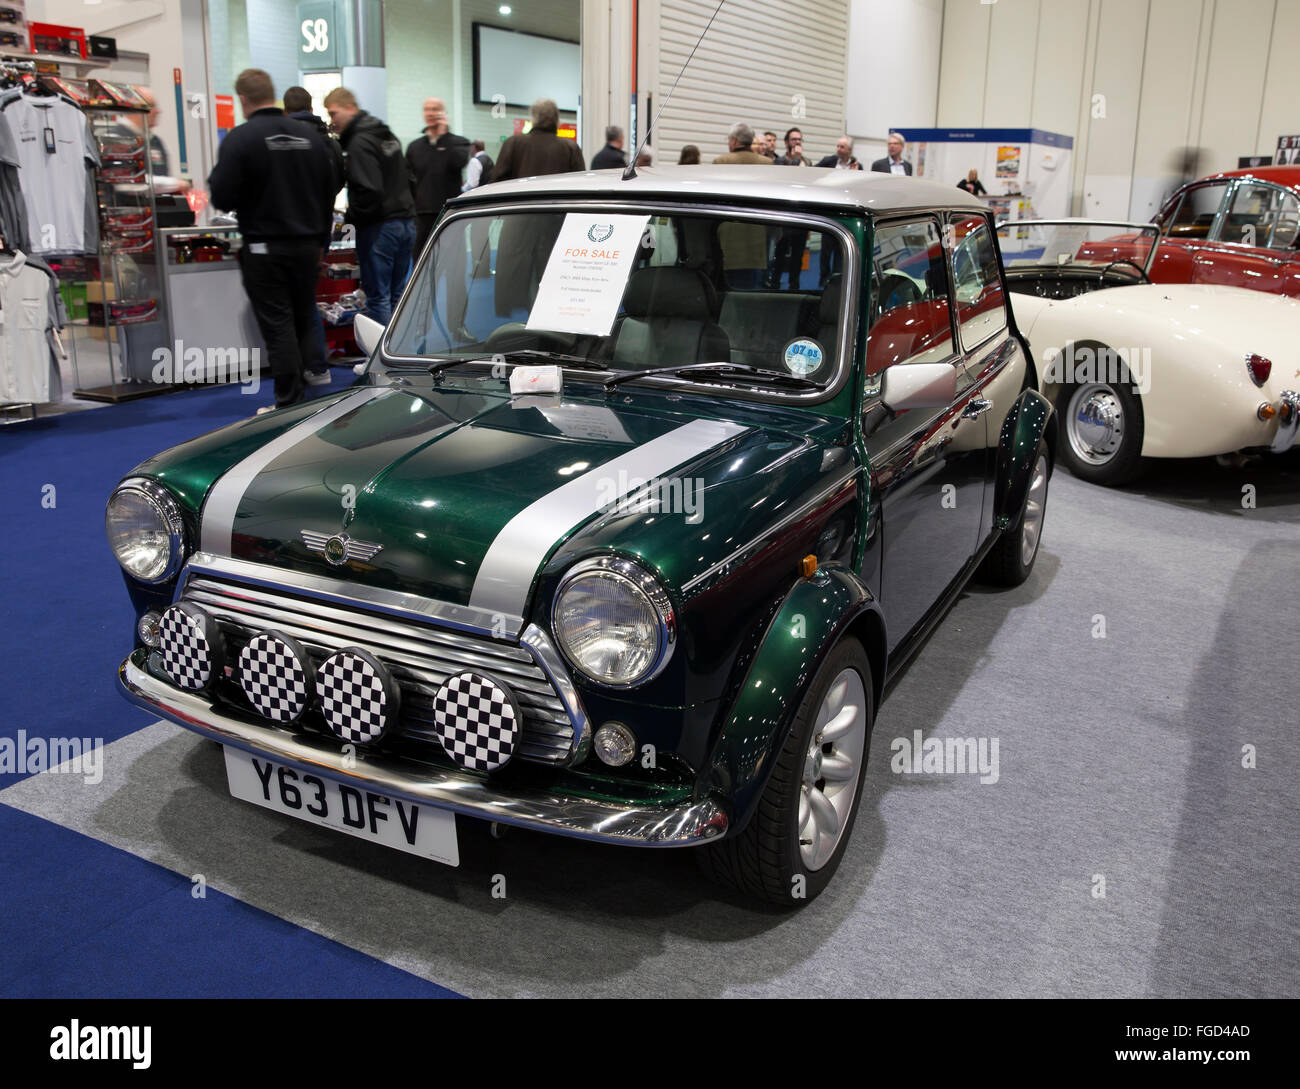 ExCel London,UK,18th February 2016,2001 Mini Cooper Sport